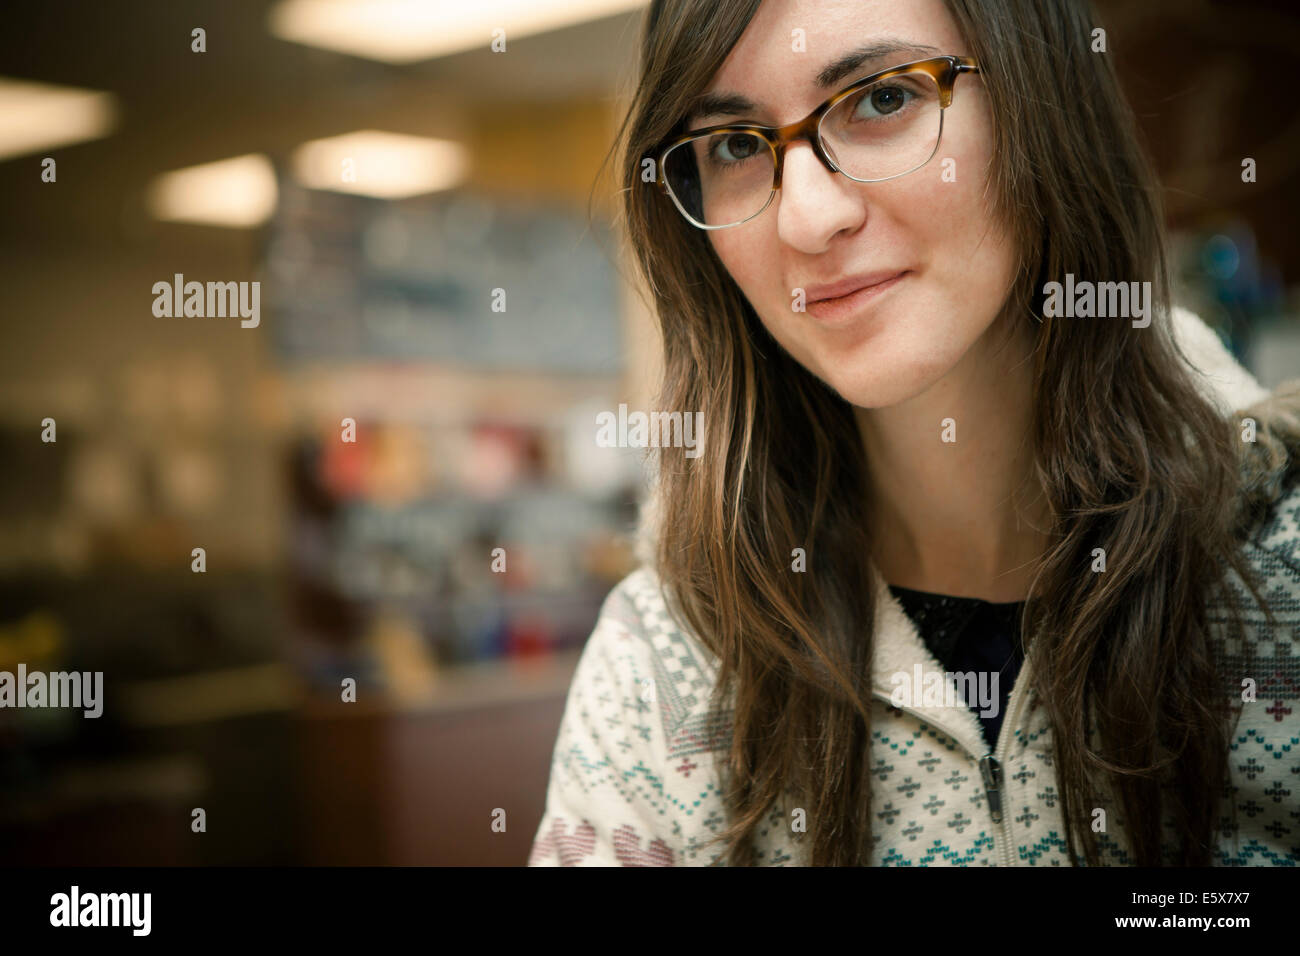 Close up portrait of mid adult woman in cafe - Stock Image